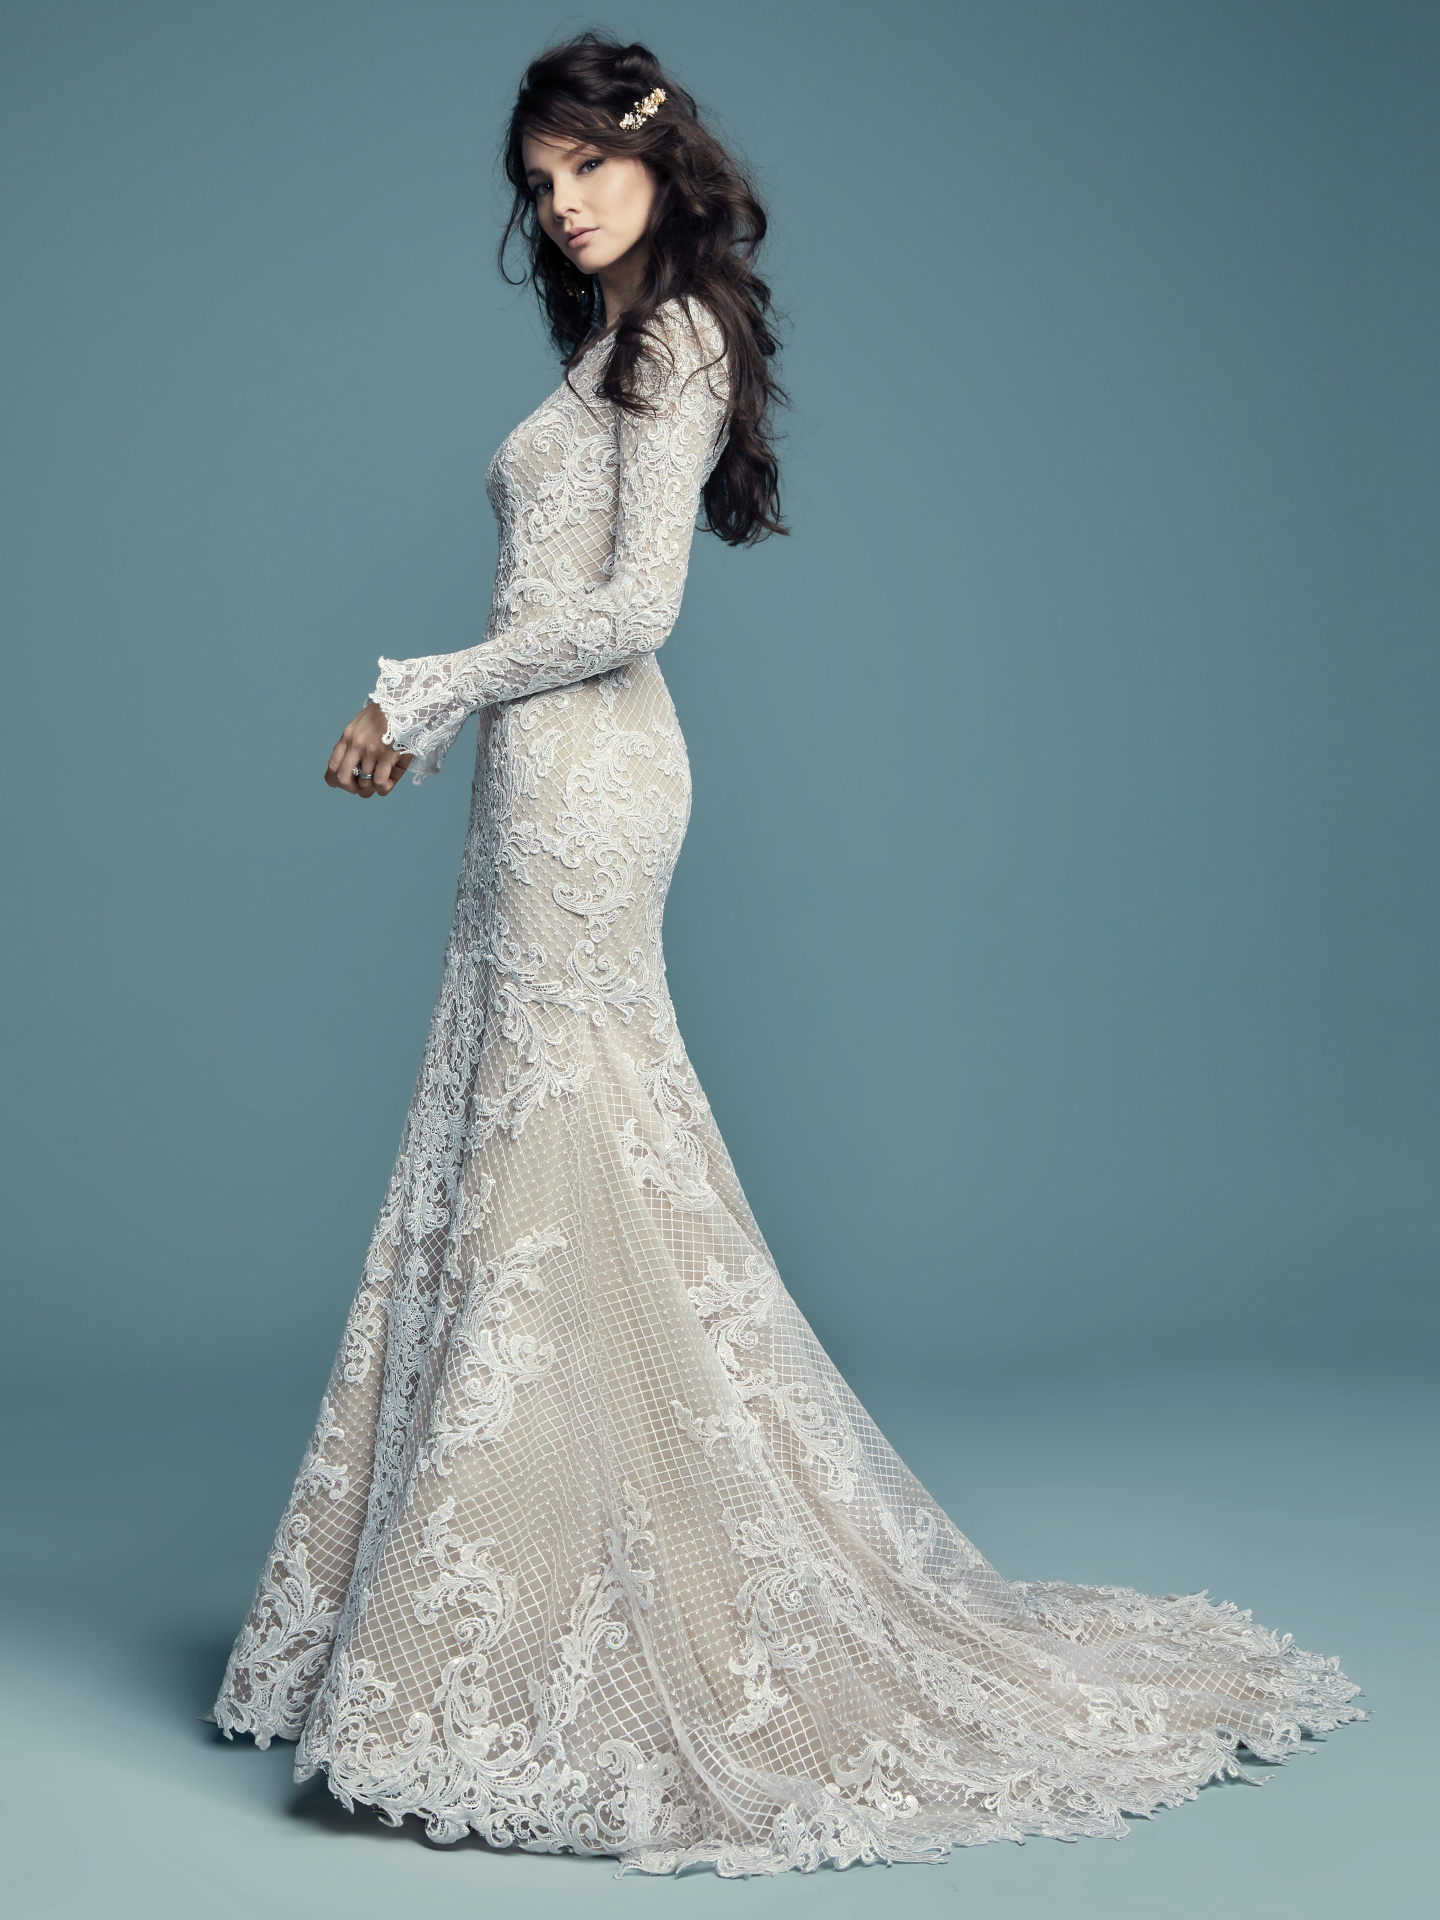 Favorite Sleeved Wedding dresses - Boho sleeved wedding dress Hailey Lynette by Maggie Sottero